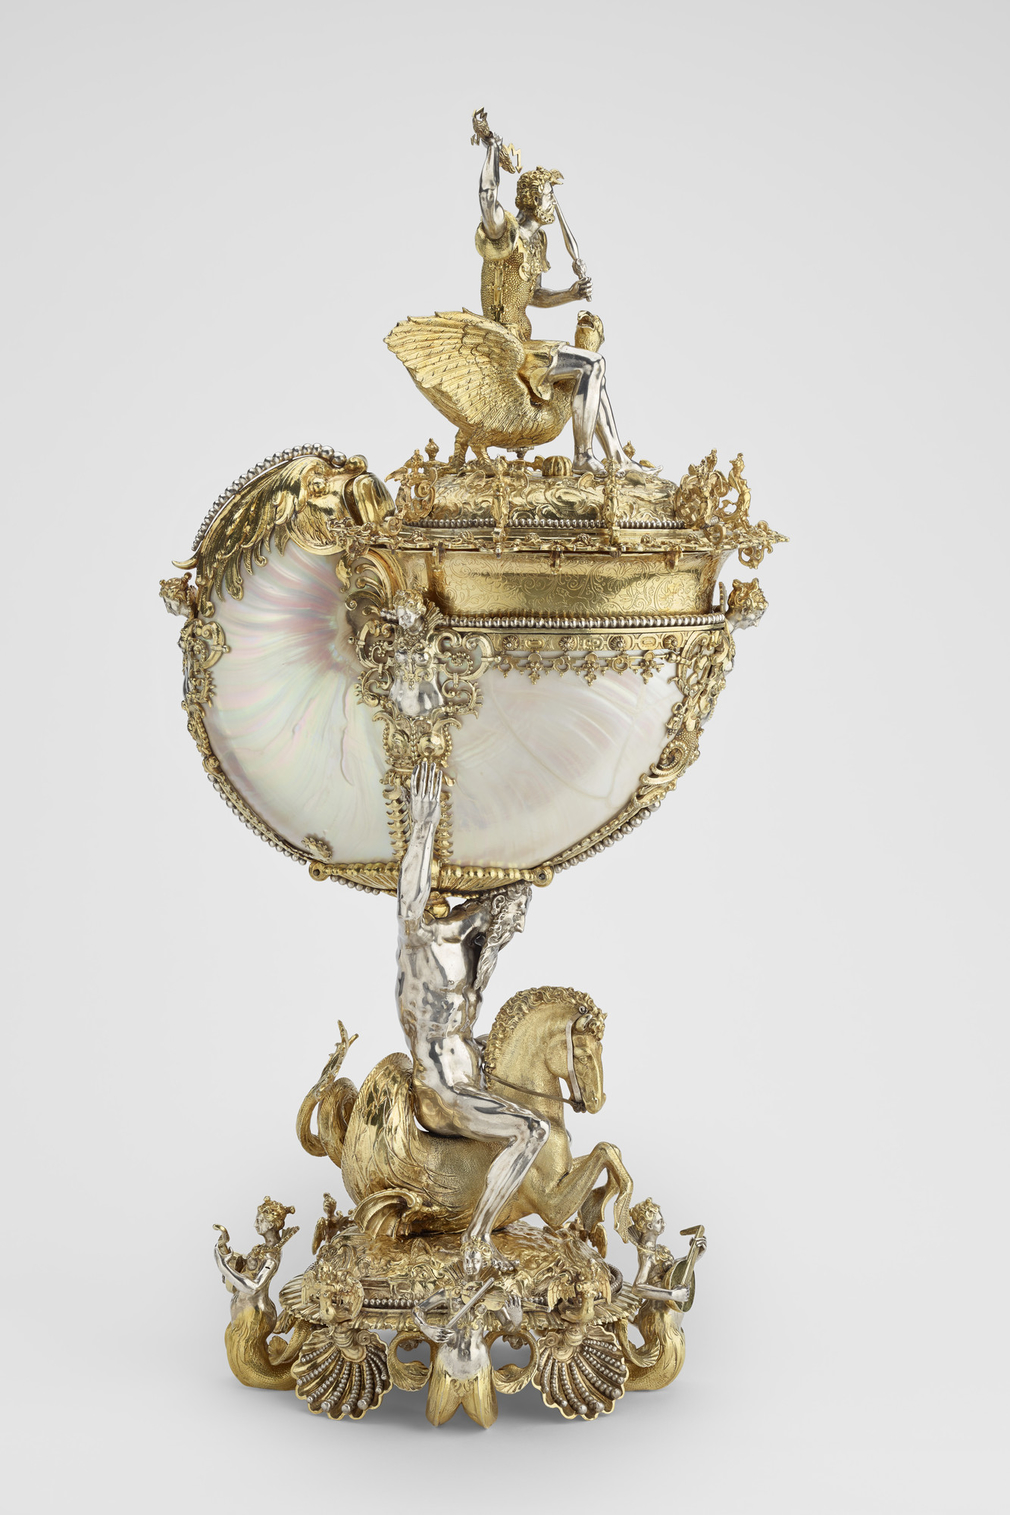 This spectacular Kunstkammer object is one of the finest examples of antiquarian plate acquired by George IV. On its arrival in 1823, it joined a growing collection of virtuoso sideboard cups of varying dates and nationalities. <br /><br />Although once c